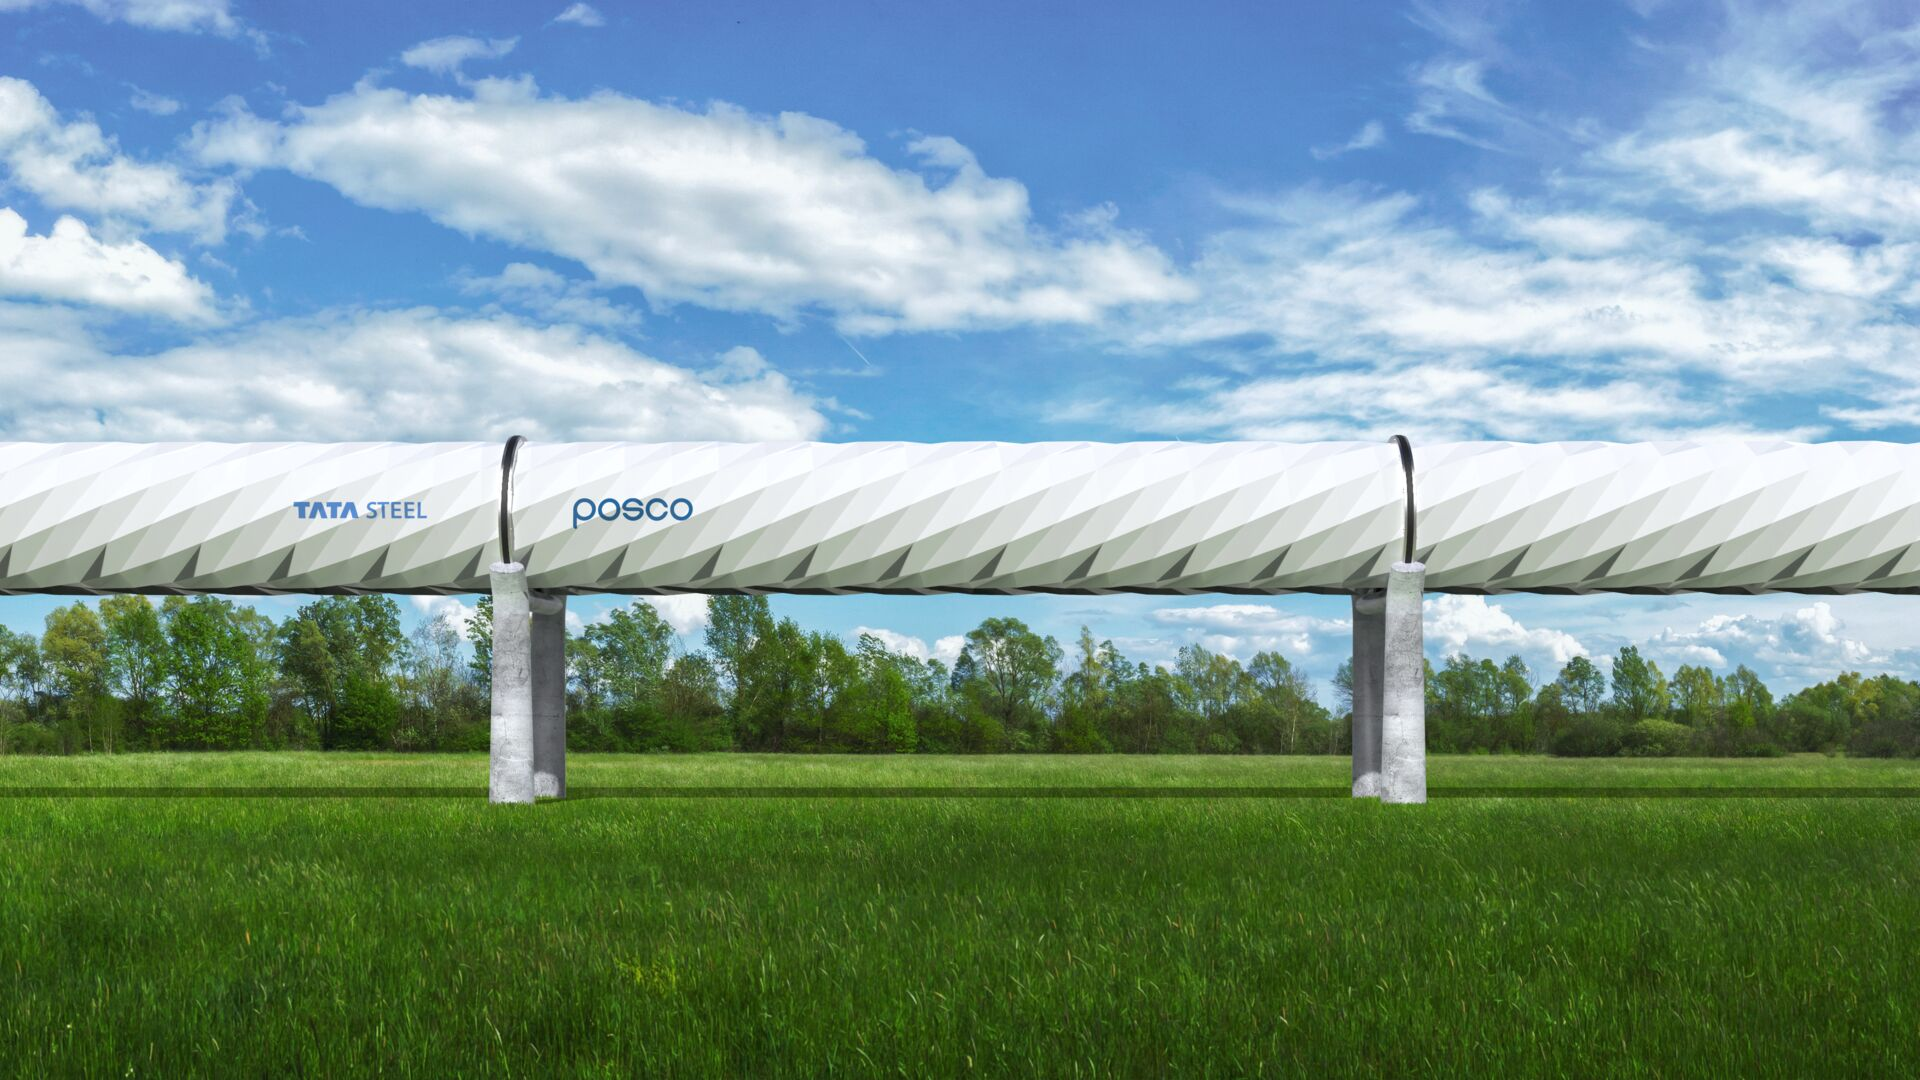 Tata Steel-POSCO Hyperloop